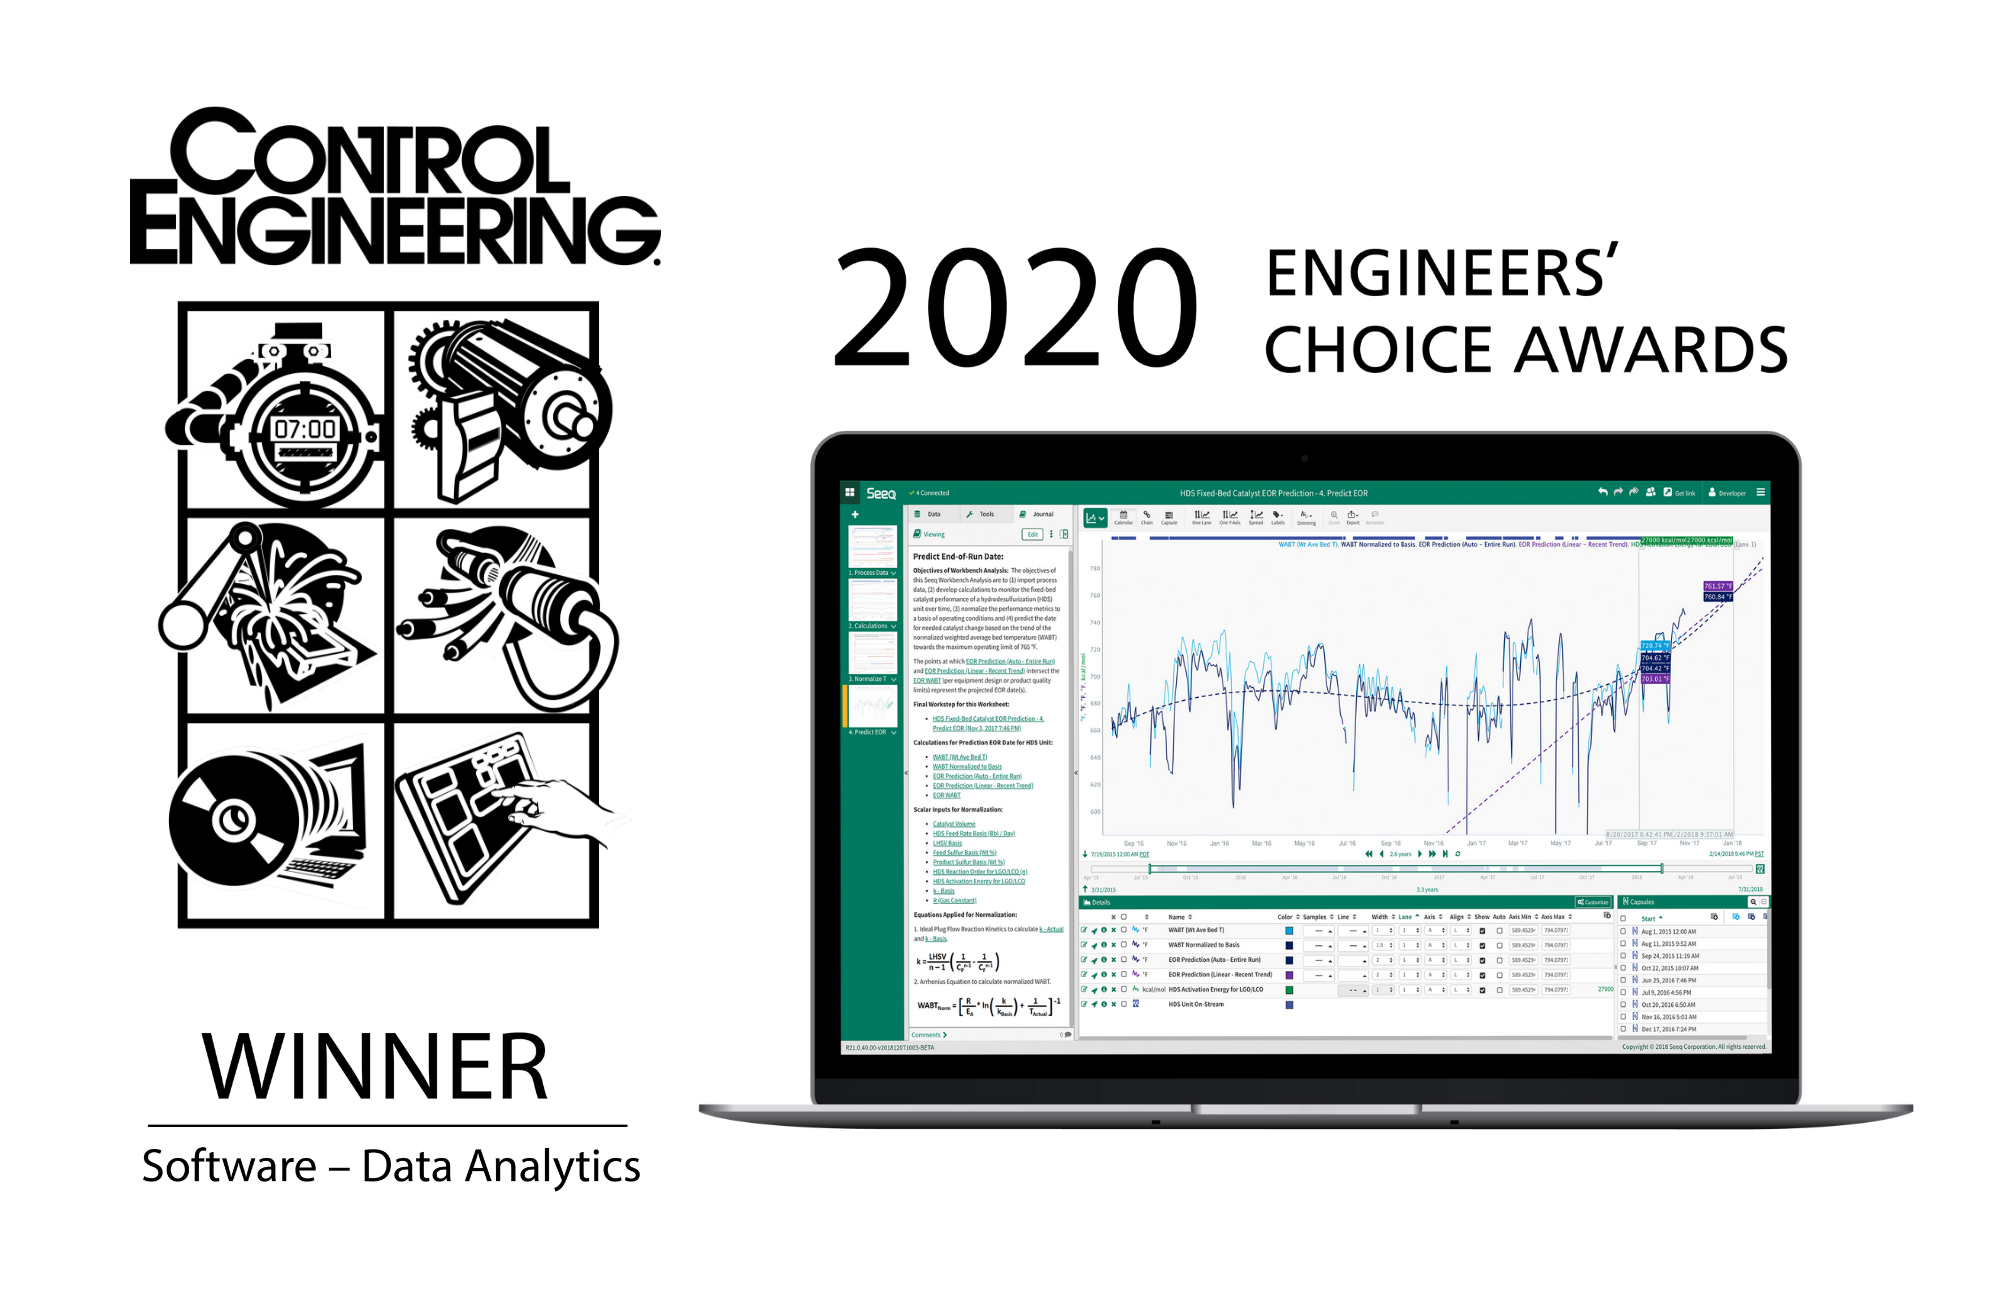 Seeq-Control Engineering 2020 Engineers Choice Award press release image